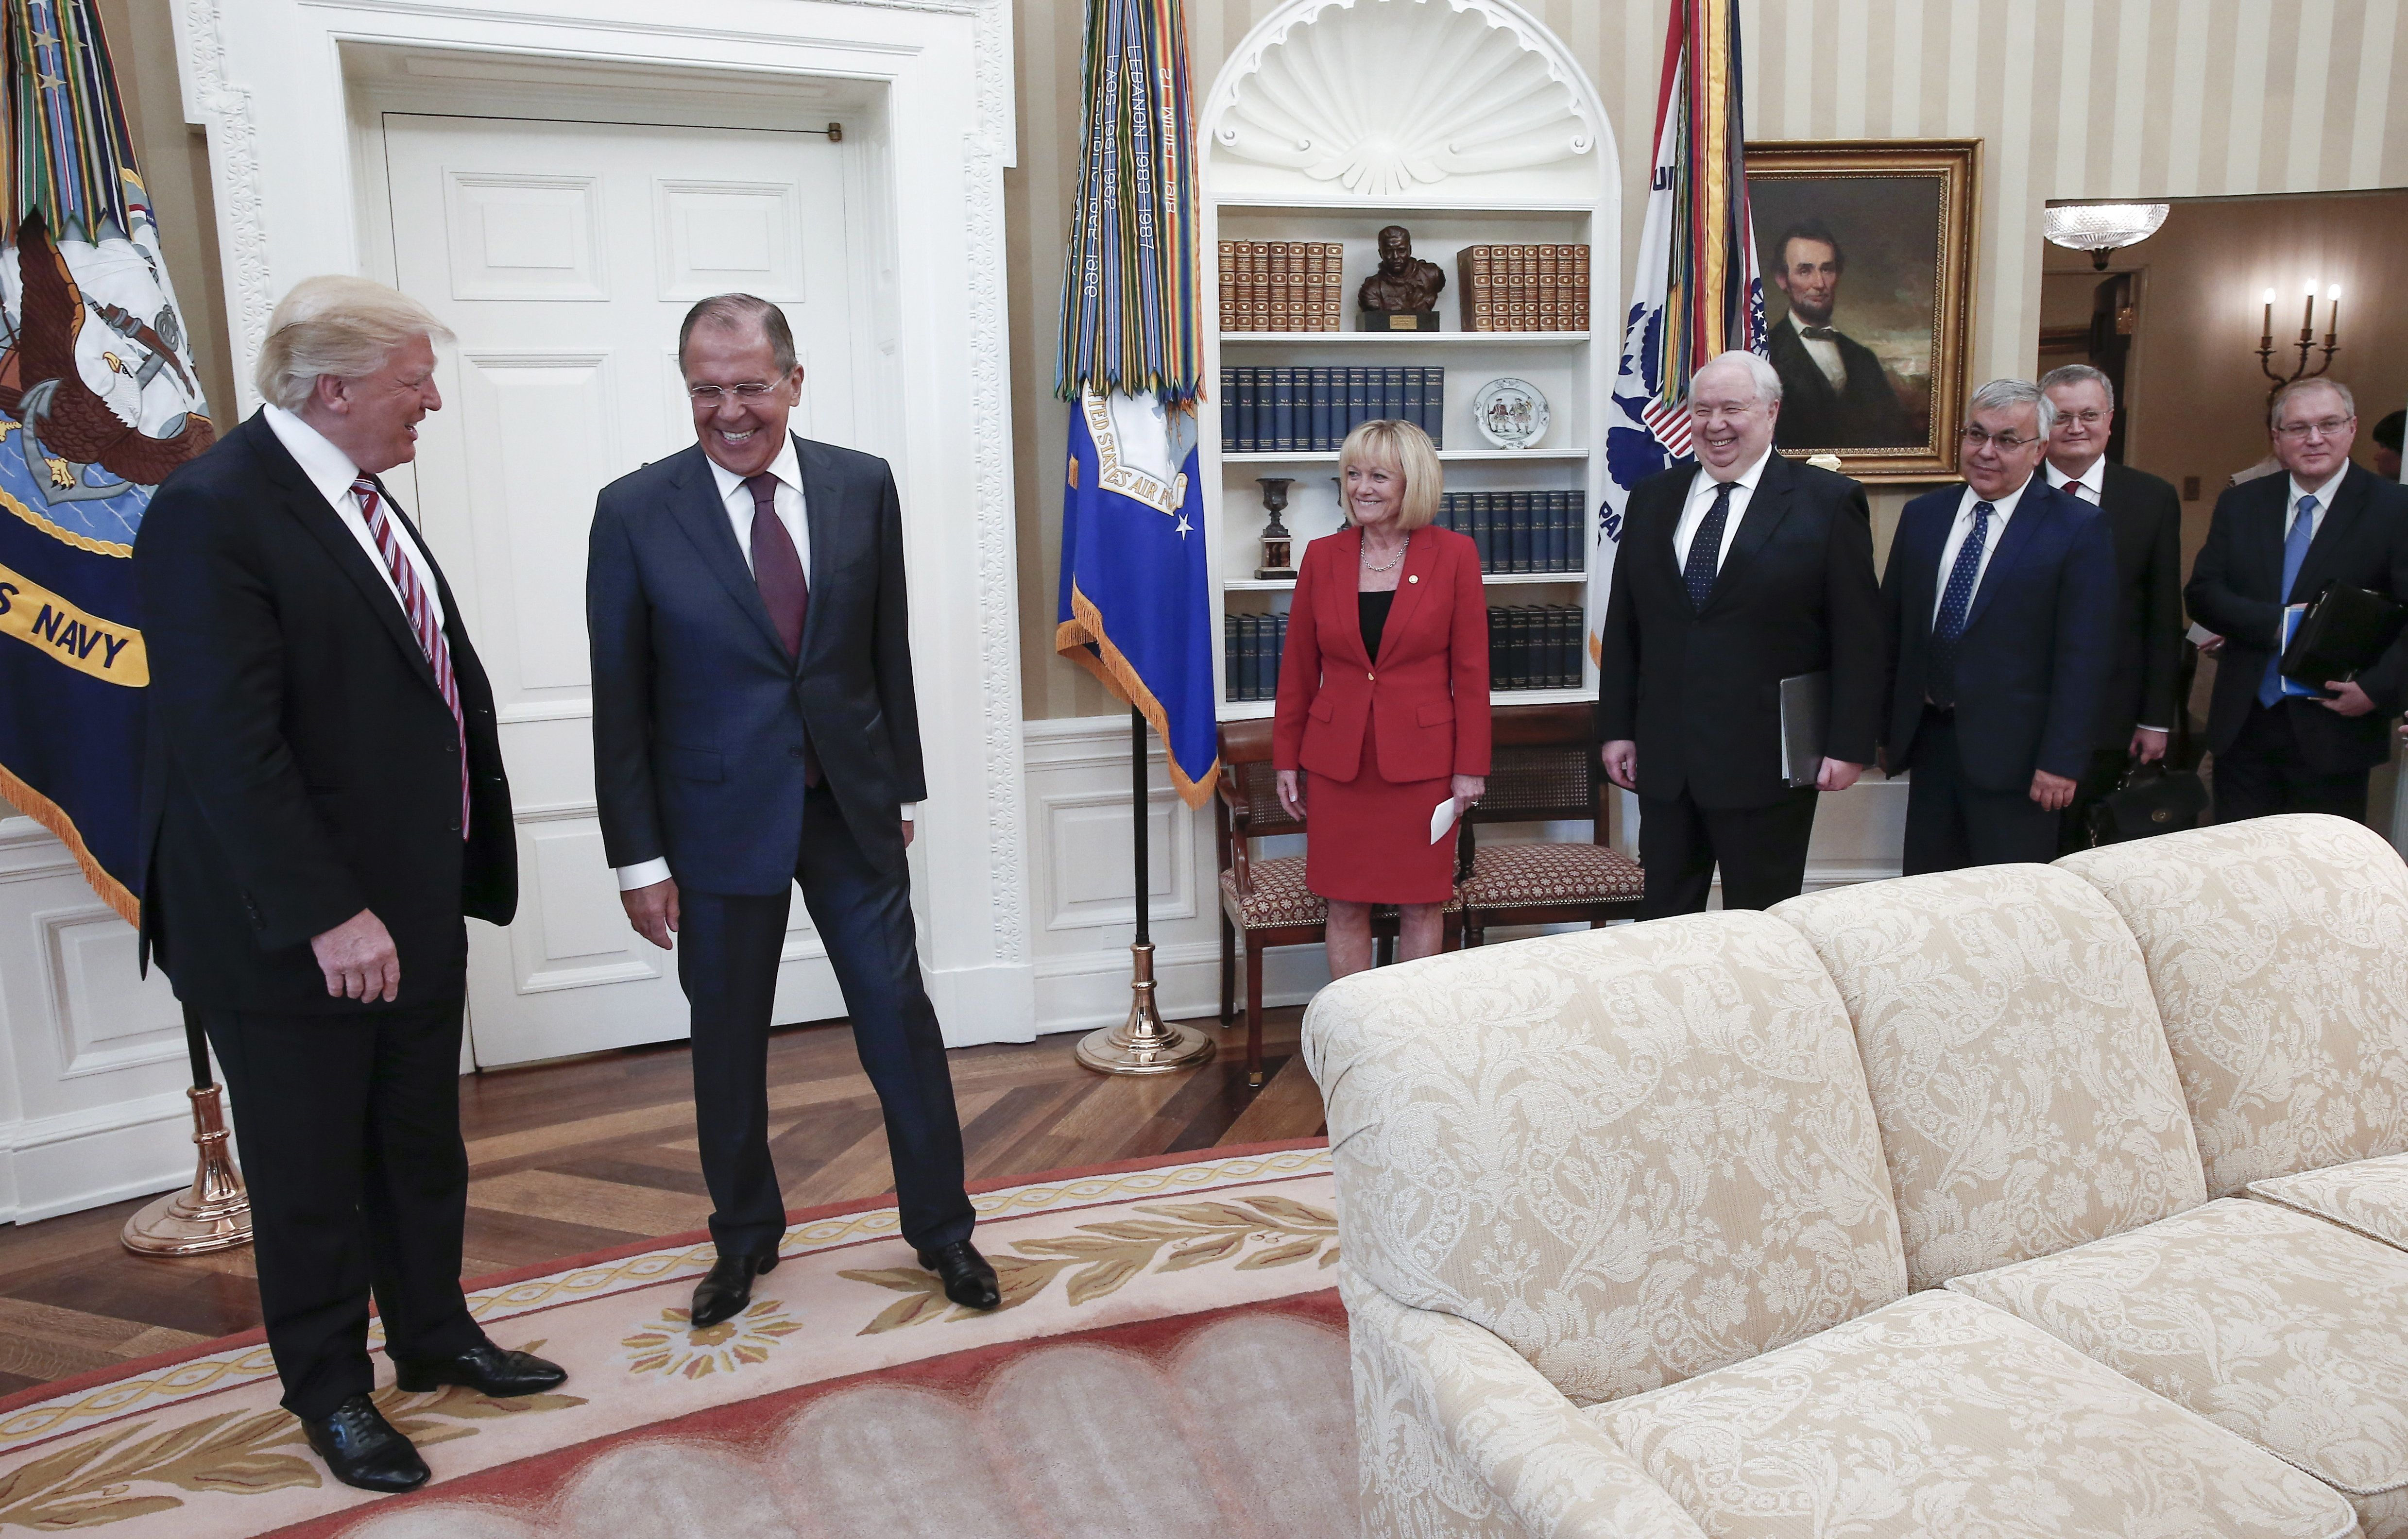 President Donald Trump and Russian Foreign Minister Sergey Lavrov (second from left) meet for talks in the Oval Office, along